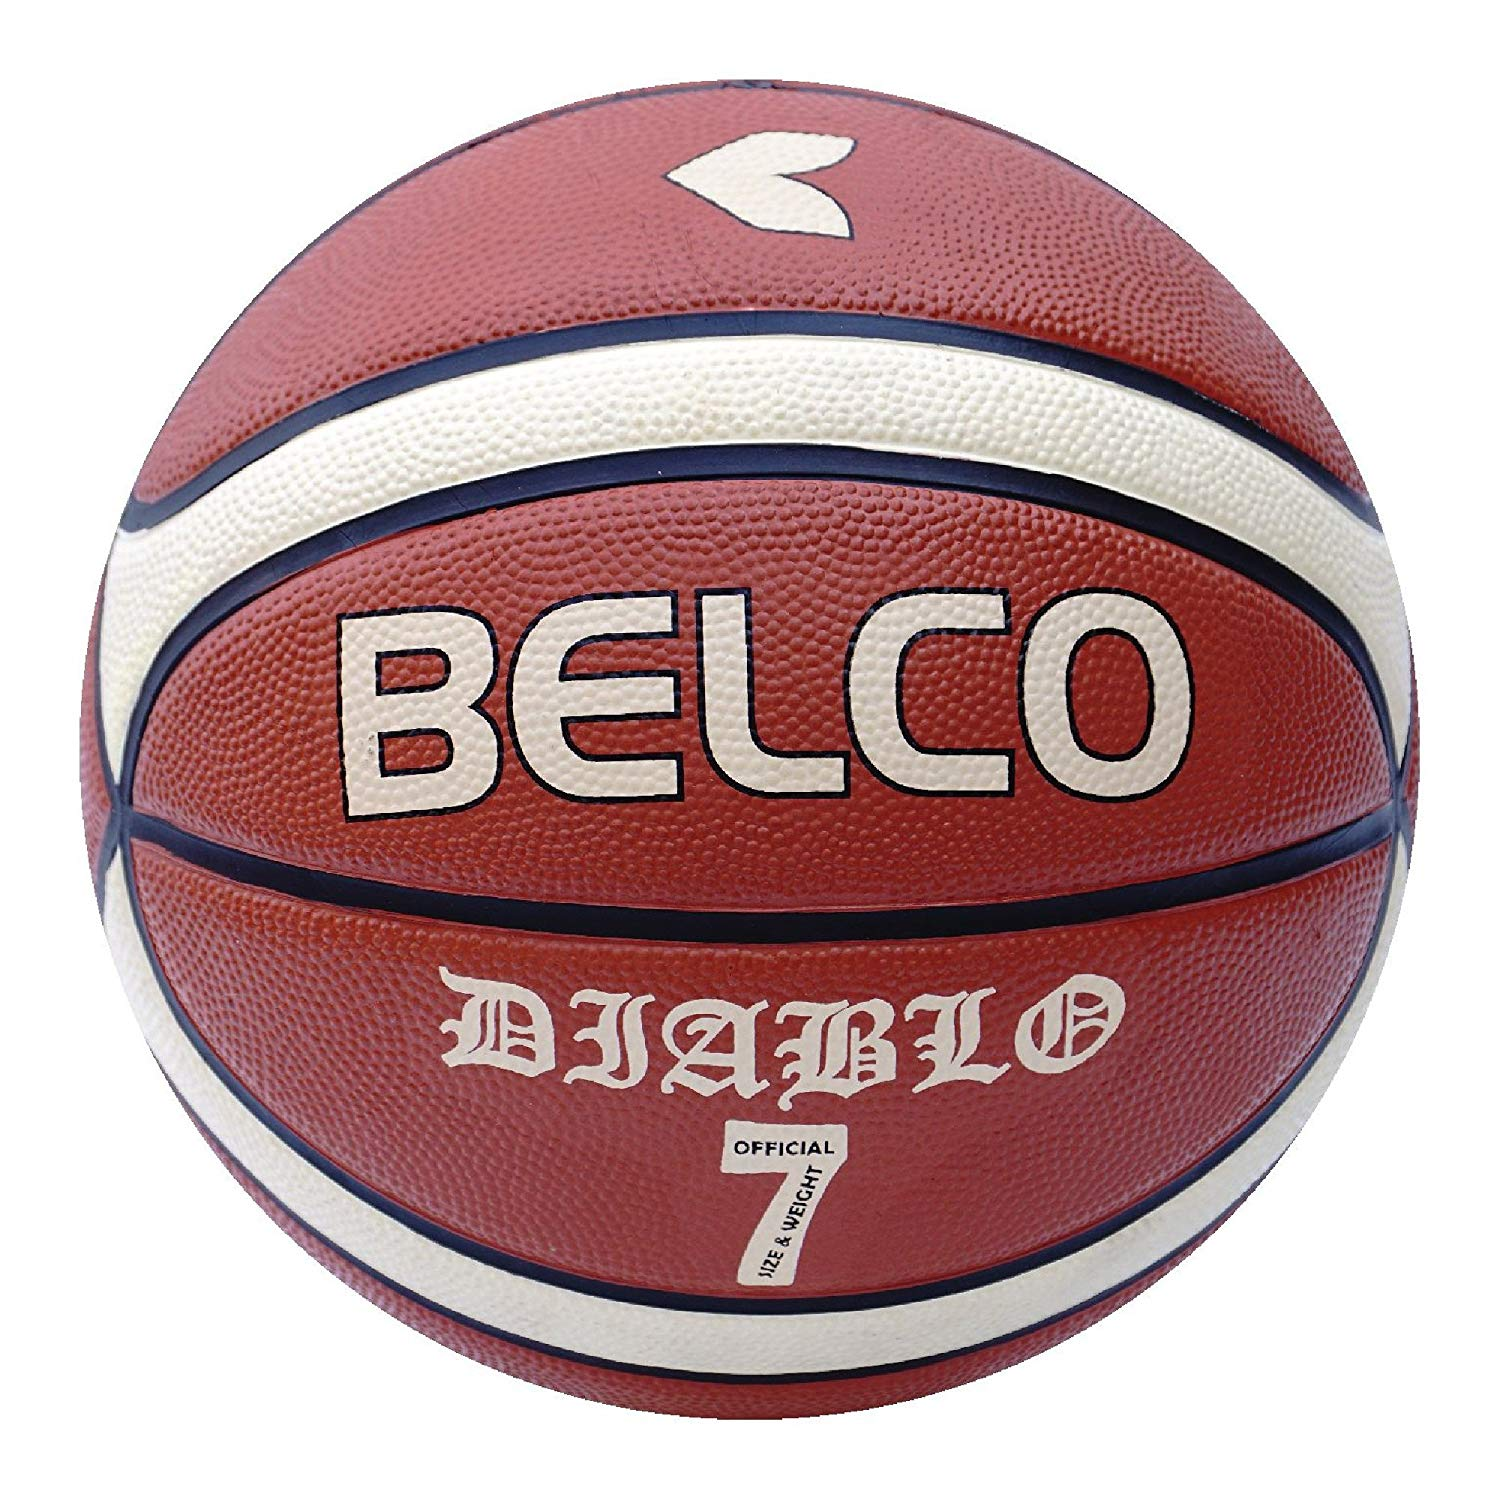 Diablo Basketball - Size 7